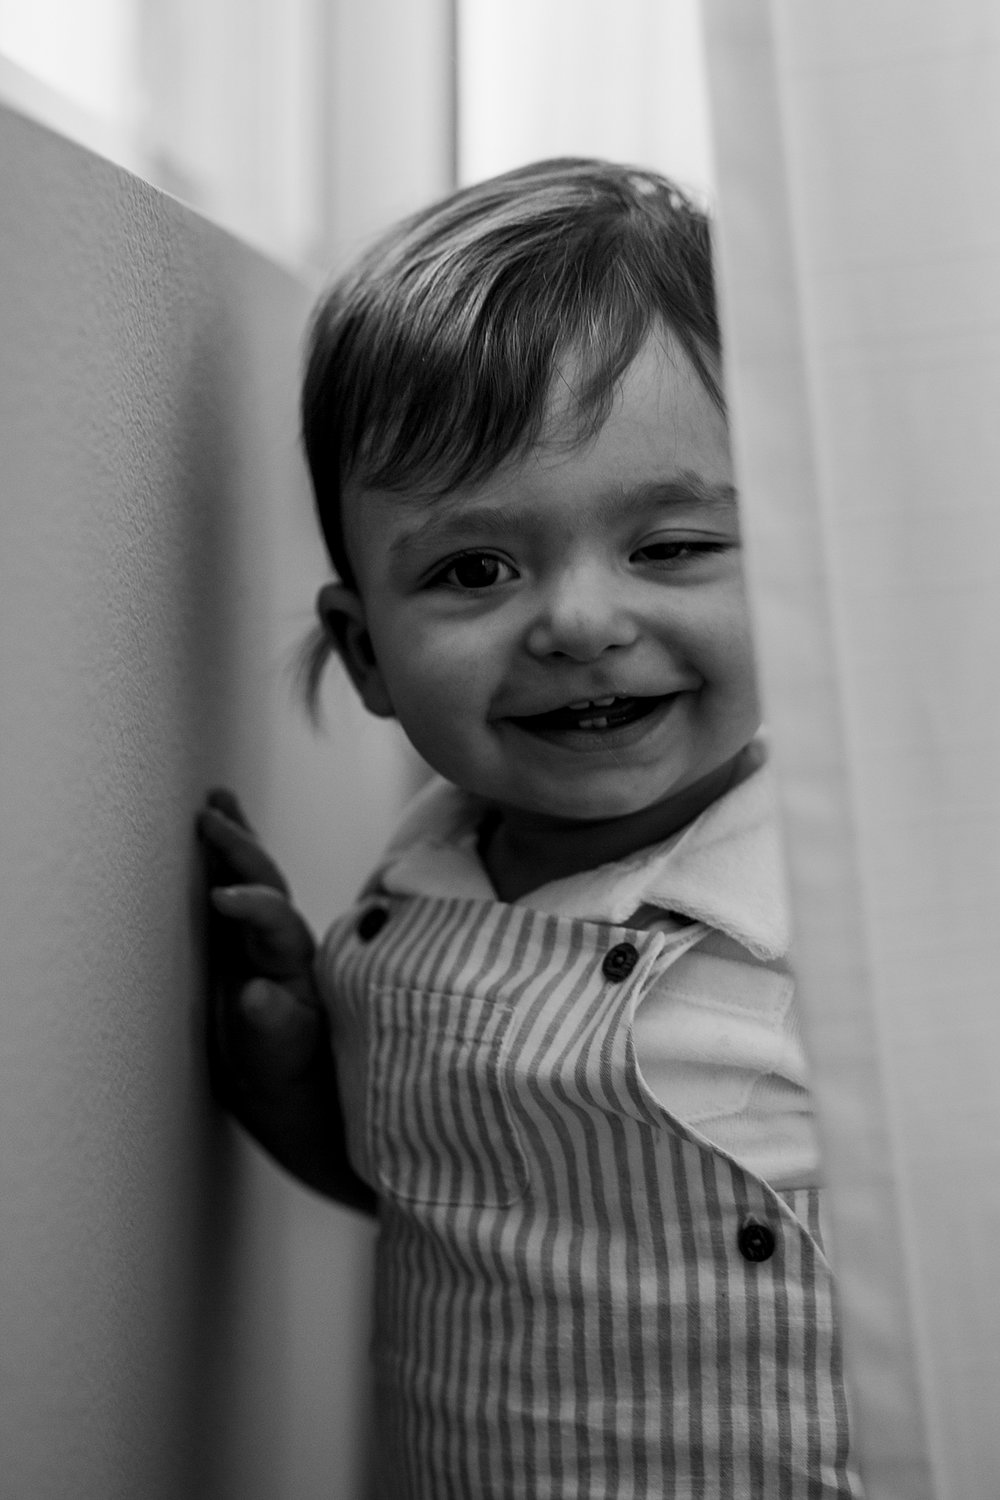 Orange County family photographer. Portrait of one year old at his bedroom window during in home session in Irvine CA